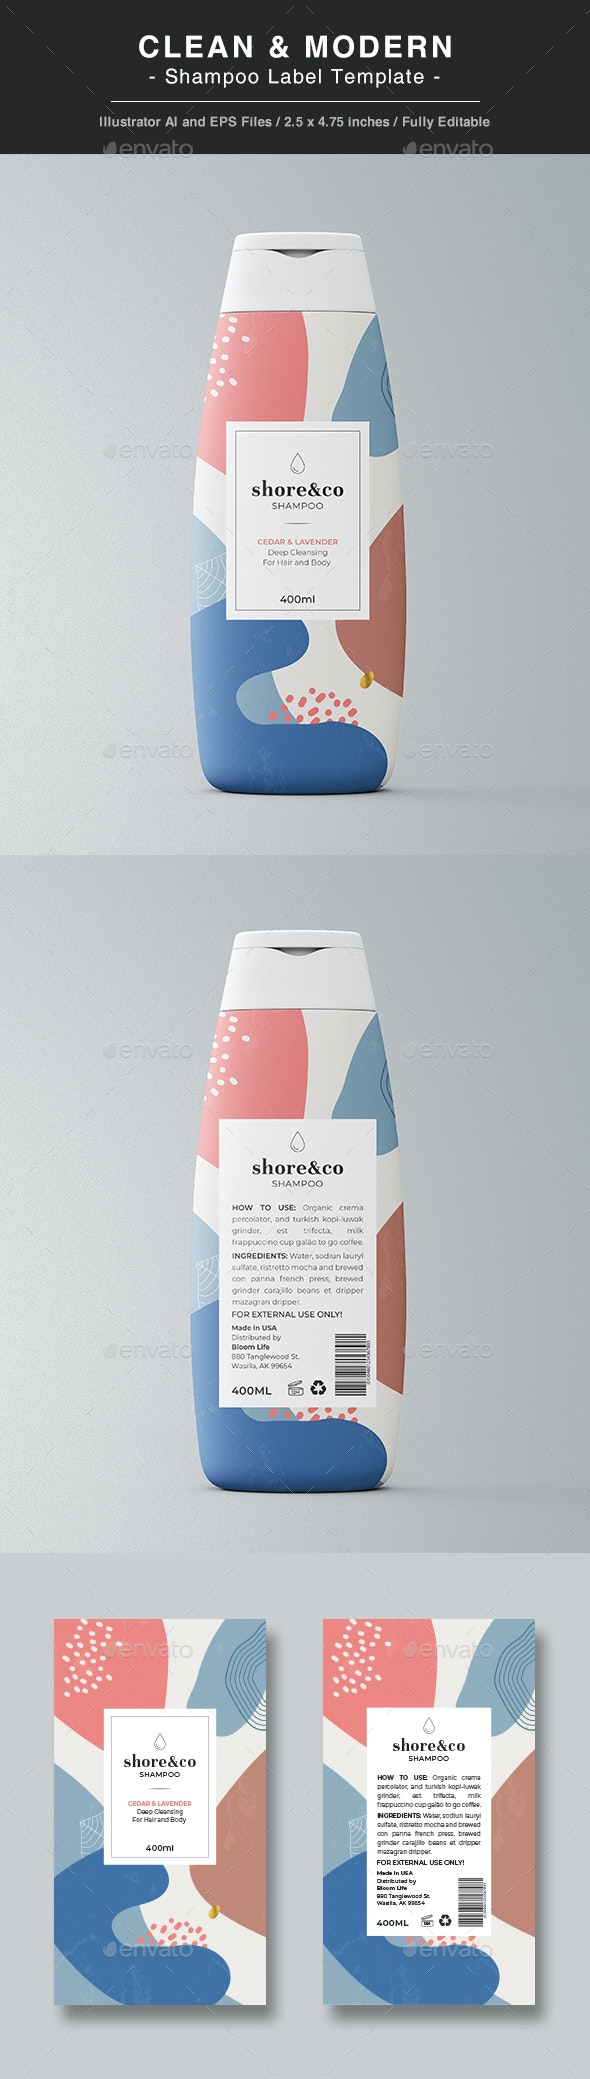 Shampoo Label Template - Packaging Print Templates